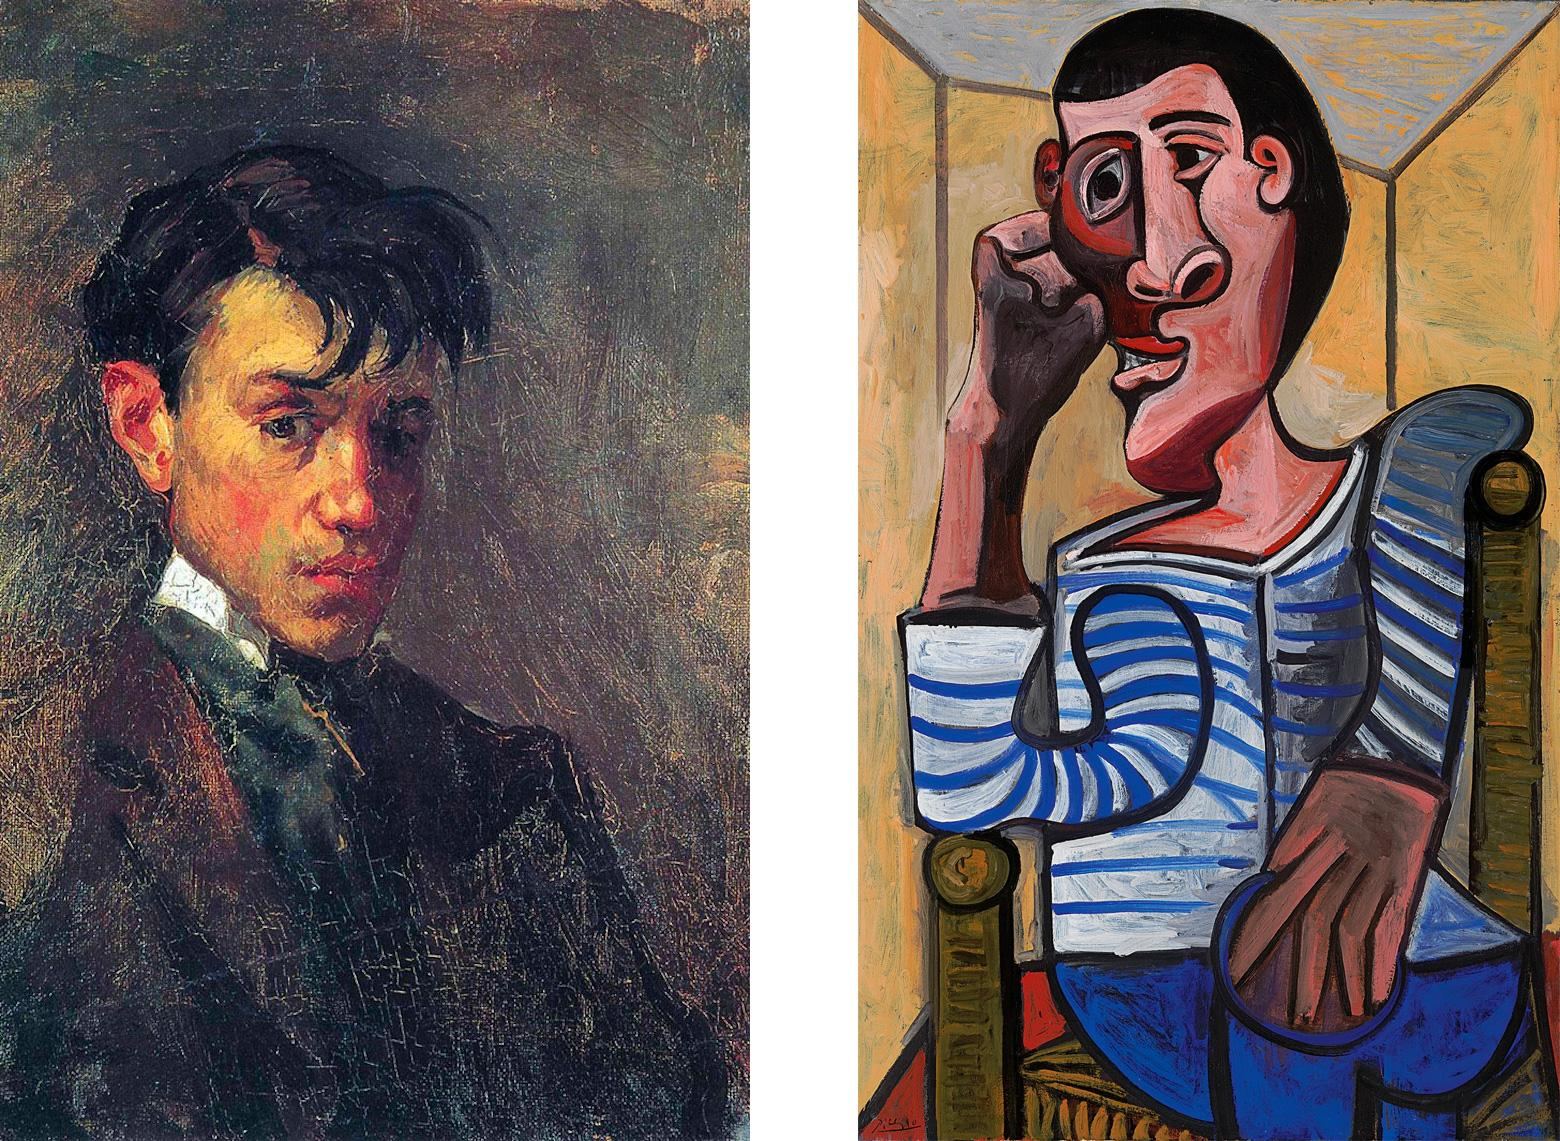 Designers who want to design innovative websites should learn from masters like Picasso.